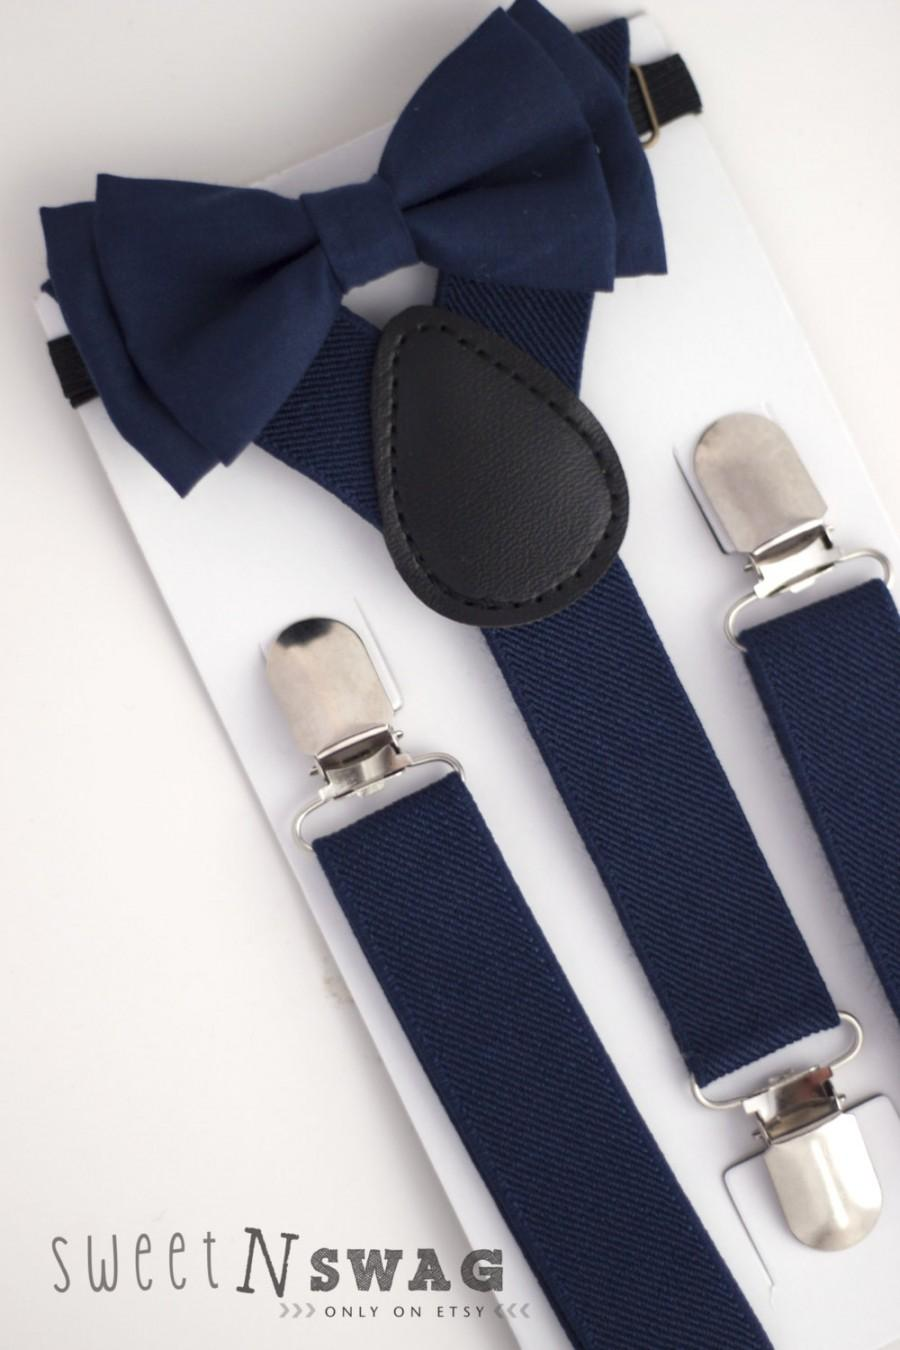 Hochzeit - SUSPENDER & BOWTIE SET.  Newborn - Adult sizes. Navy Blue Suspenders. Navy Blue bowtie